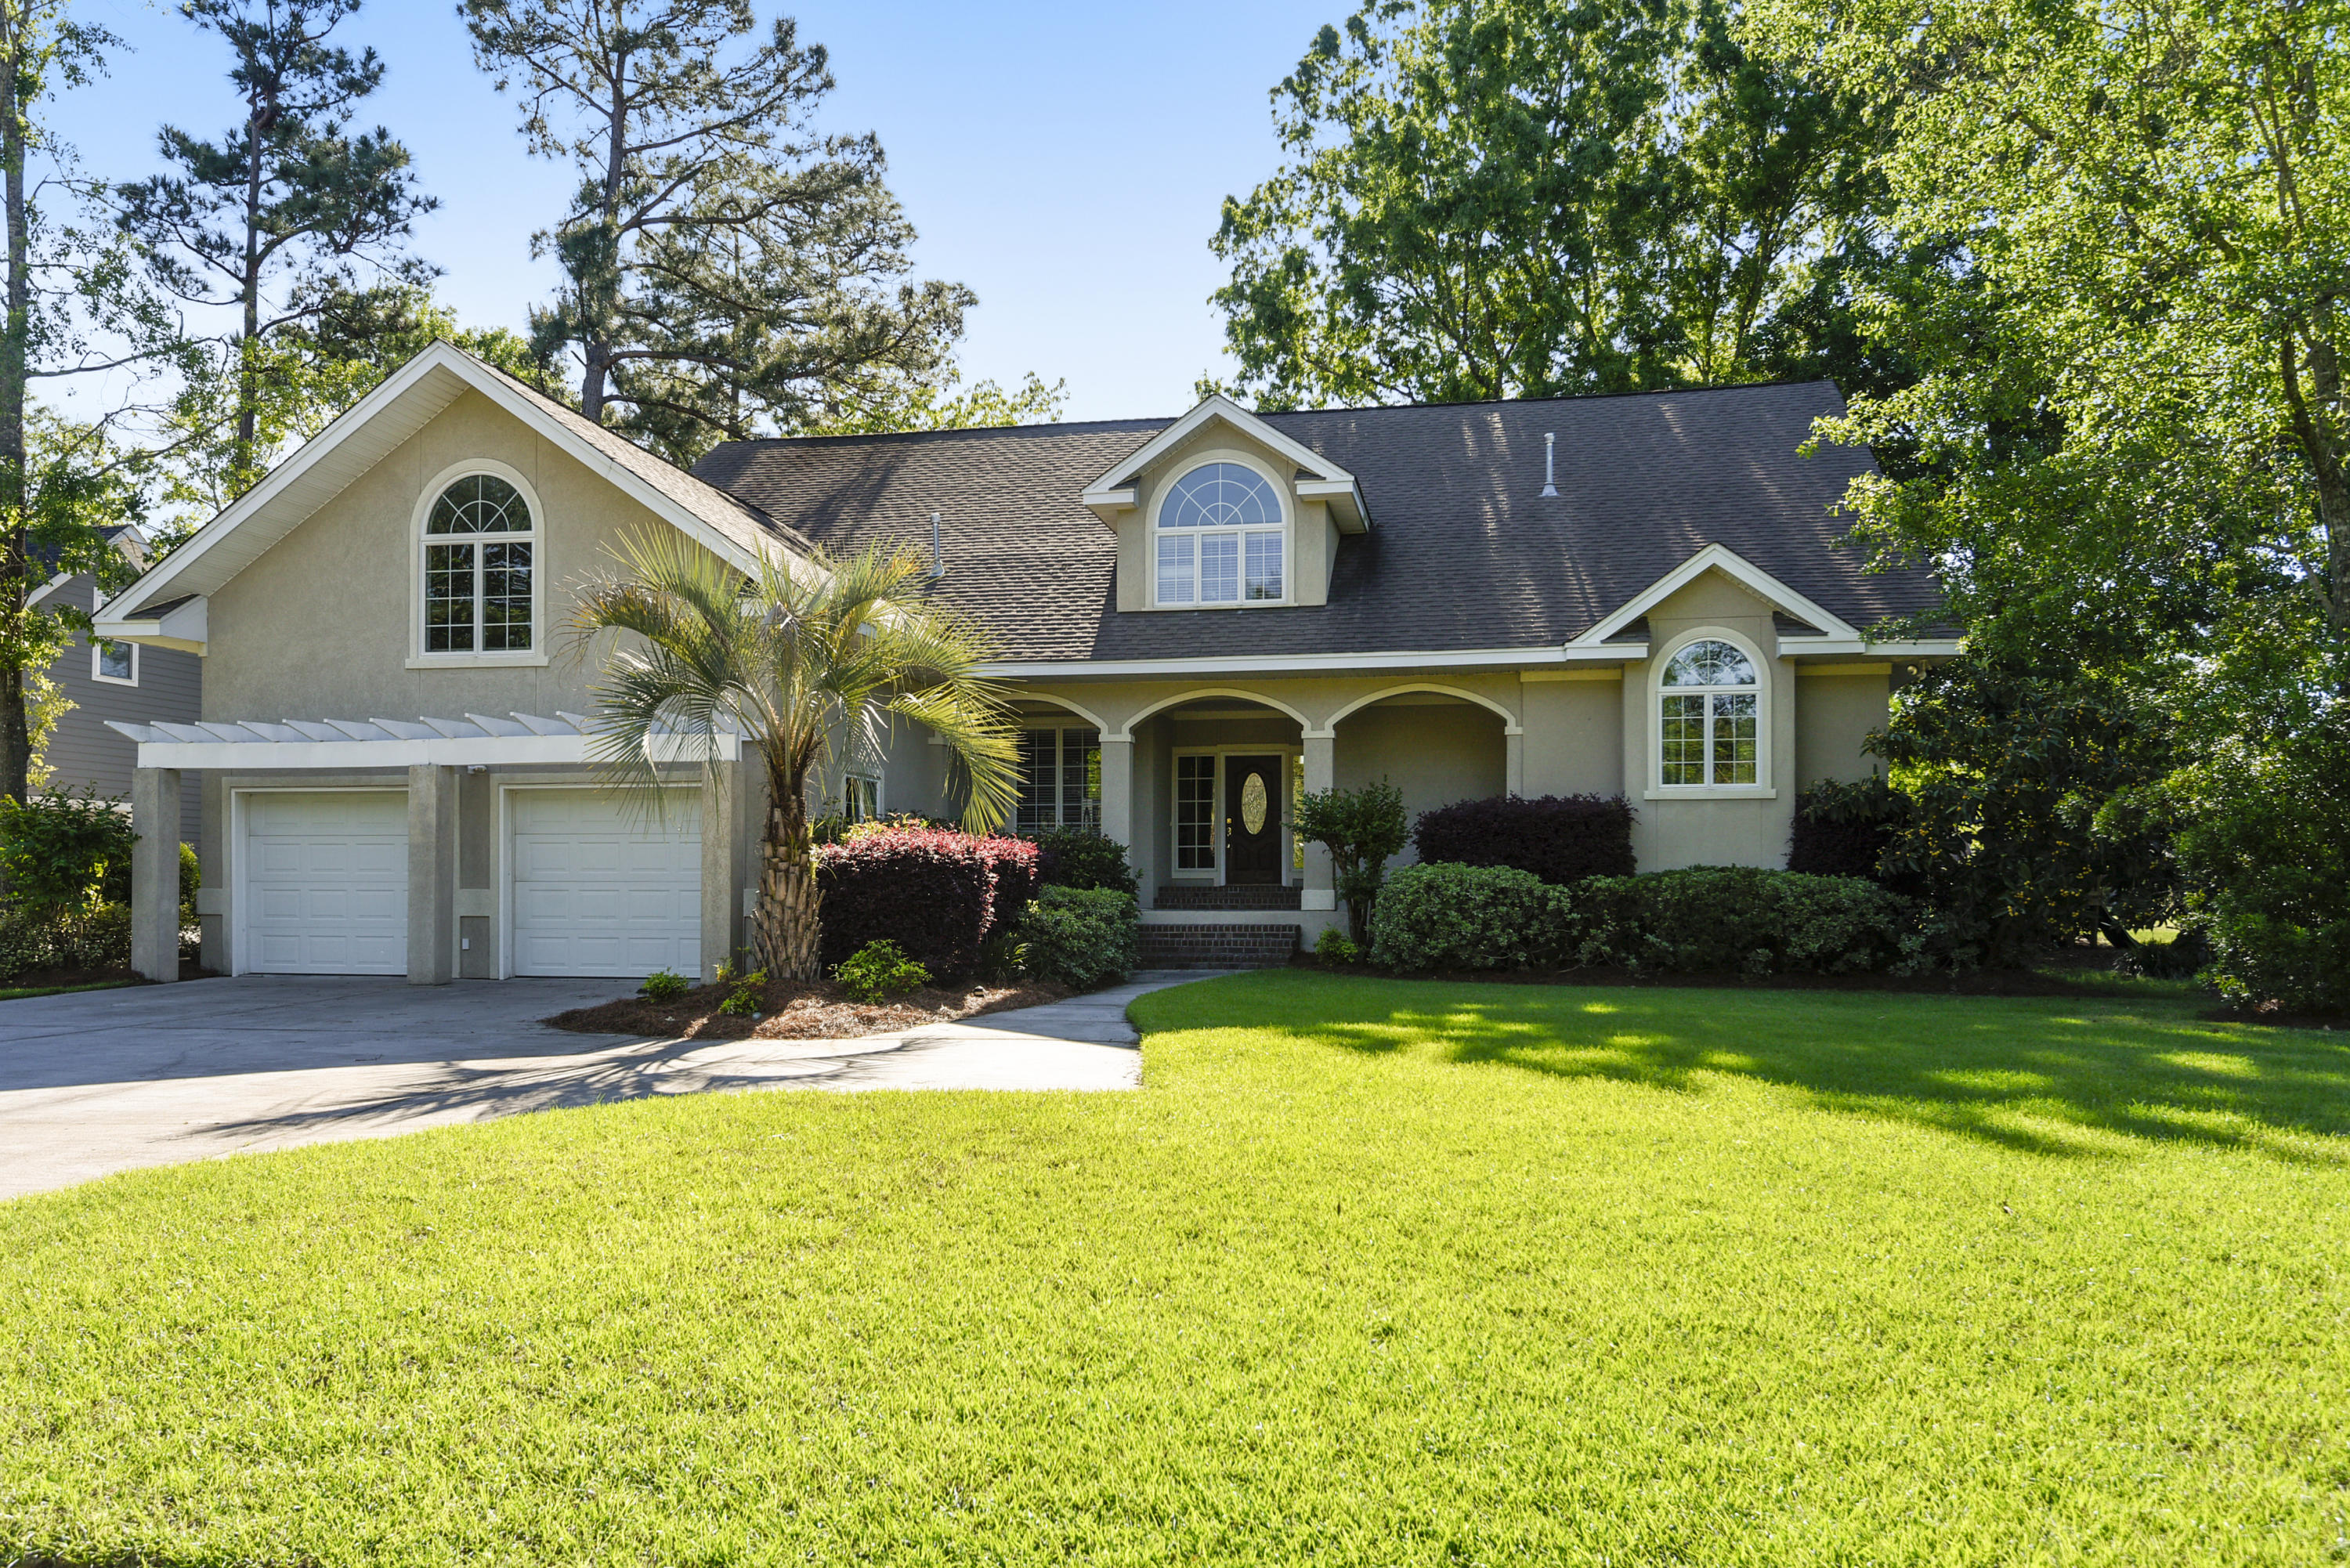 Coosaw Creek Country Club Homes For Sale - 8855 Fairway Woods, North Charleston, SC - 32